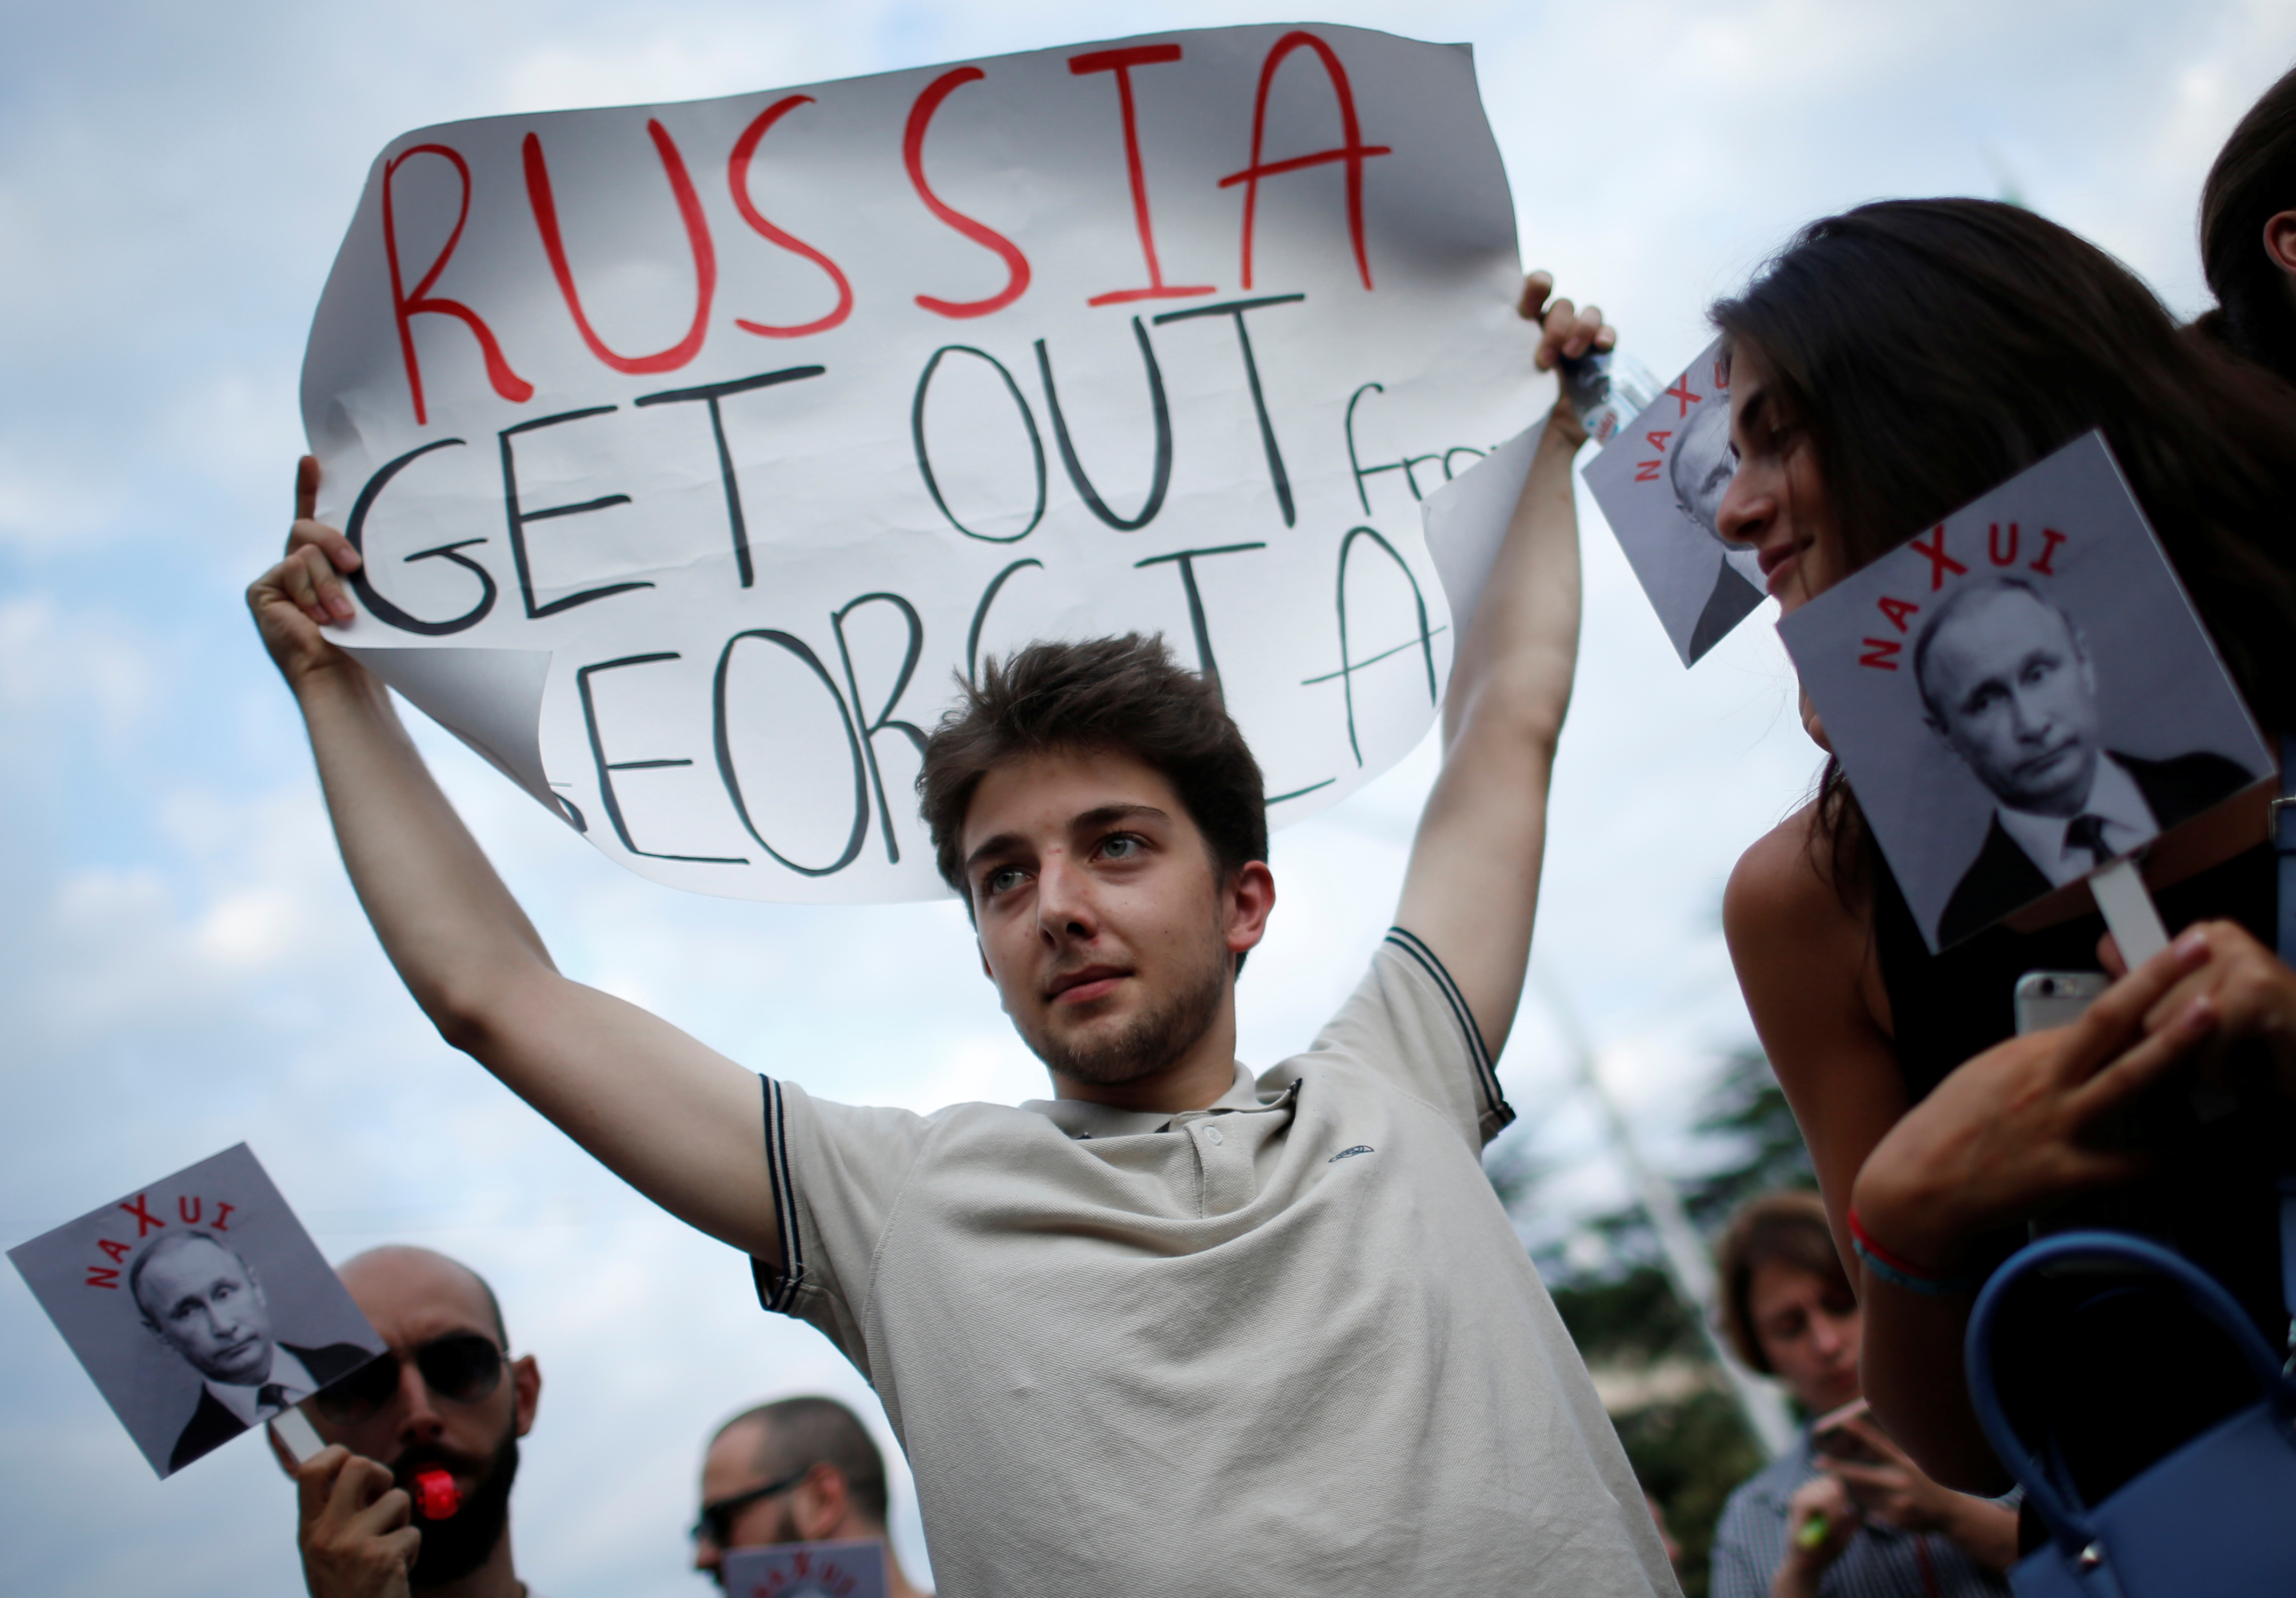 """A man in a crowd wearing a white T-shirt holds up a sign saying 'Russia get out of Georgia."""""""